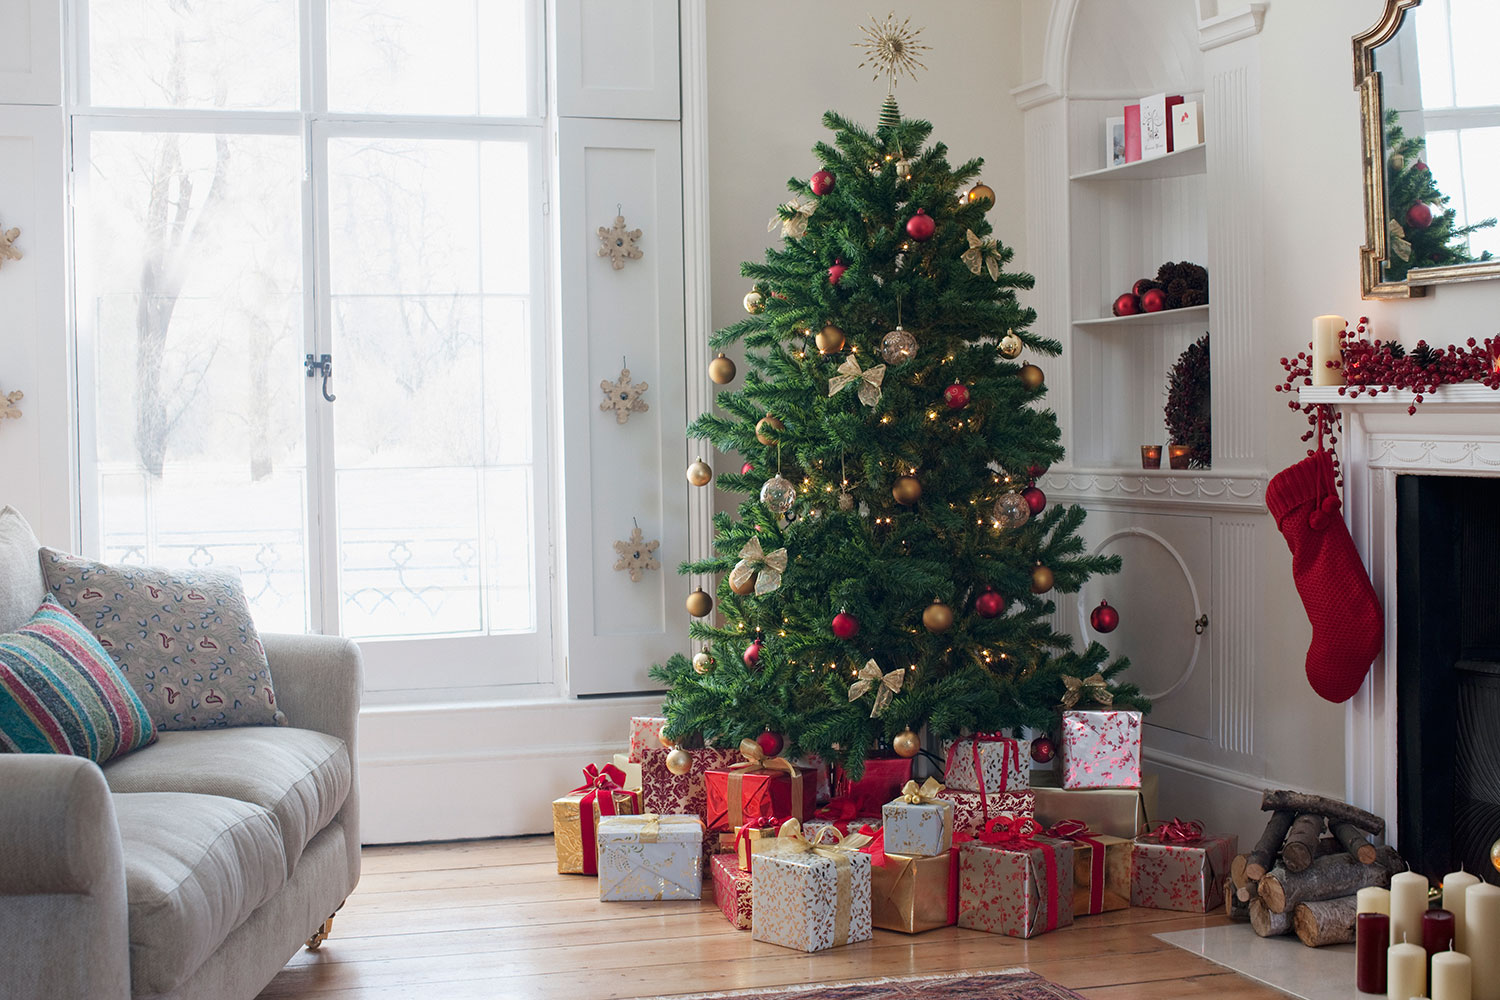 Putting Up Your Holiday Decorations Early Makes You Happier